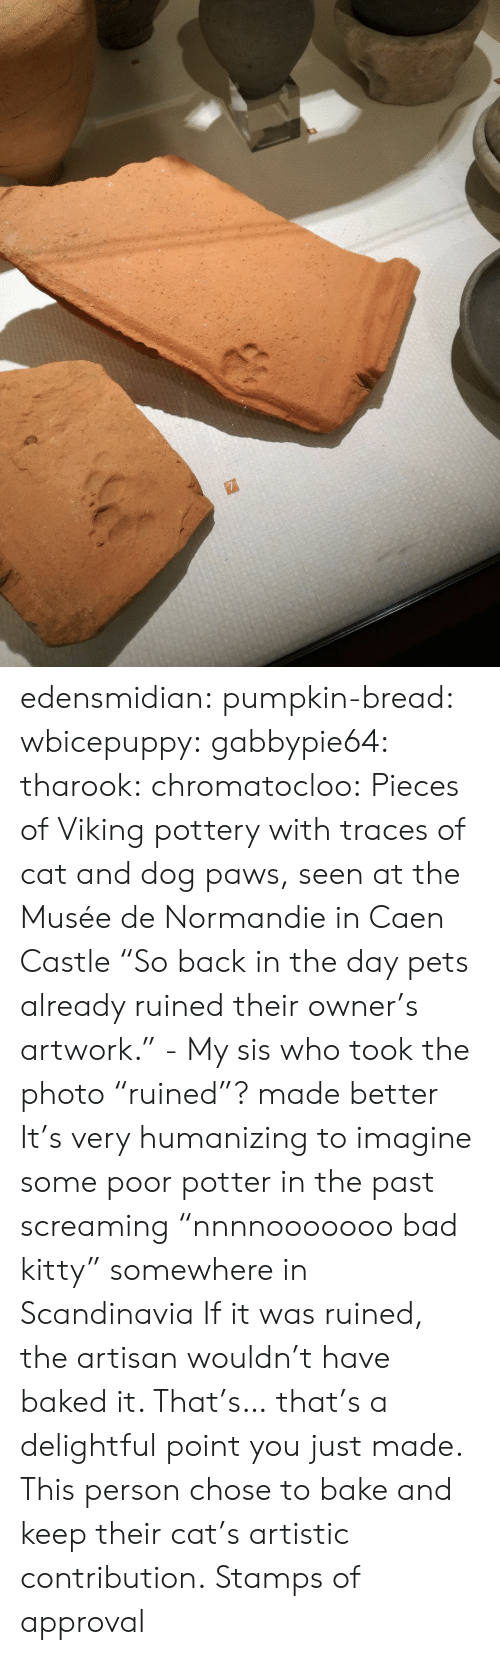 "delightful: edensmidian:  pumpkin-bread:  wbicepuppy:  gabbypie64:  tharook:  chromatocloo:  Pieces of Viking pottery with traces of cat and dog paws, seen at the Musée de Normandie in Caen Castle ""So back in the day pets already ruined their owner's artwork."" - My sis who took the photo   ""ruined""? made better   It's very humanizing to imagine some poor potter in the past screaming ""nnnnooooooo bad kitty"" somewhere in Scandinavia   If it was ruined, the artisan wouldn't have baked it.   That's… that's a delightful point you just made. This person chose to bake and keep their cat's artistic contribution.   Stamps of approval"